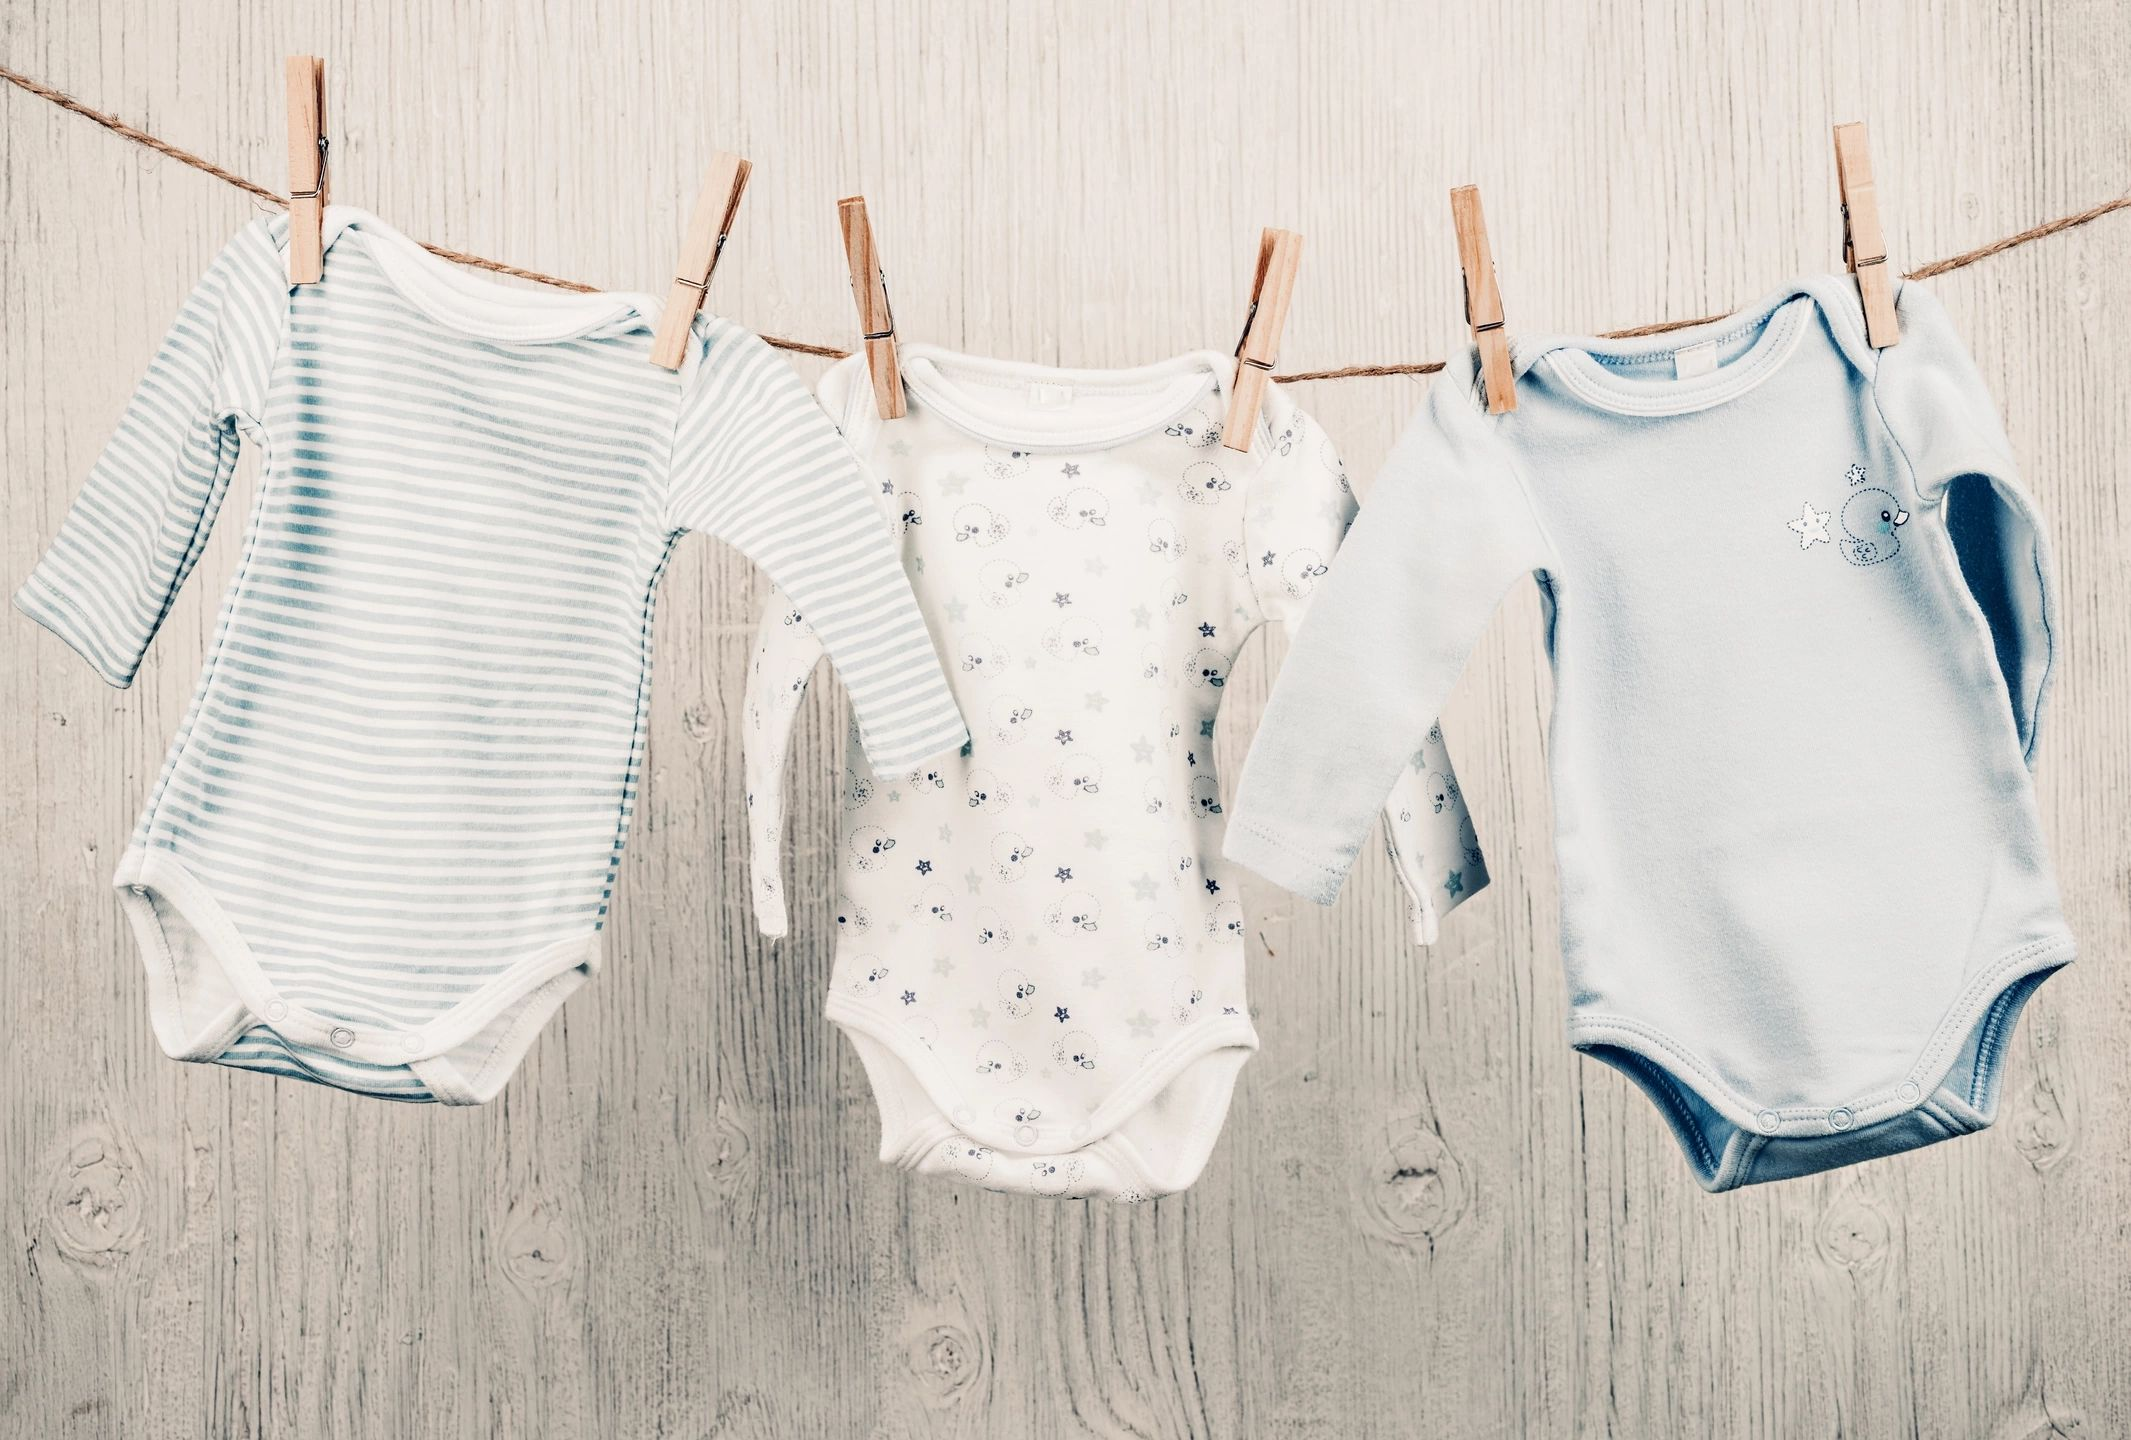 baby clothing hanging on a line